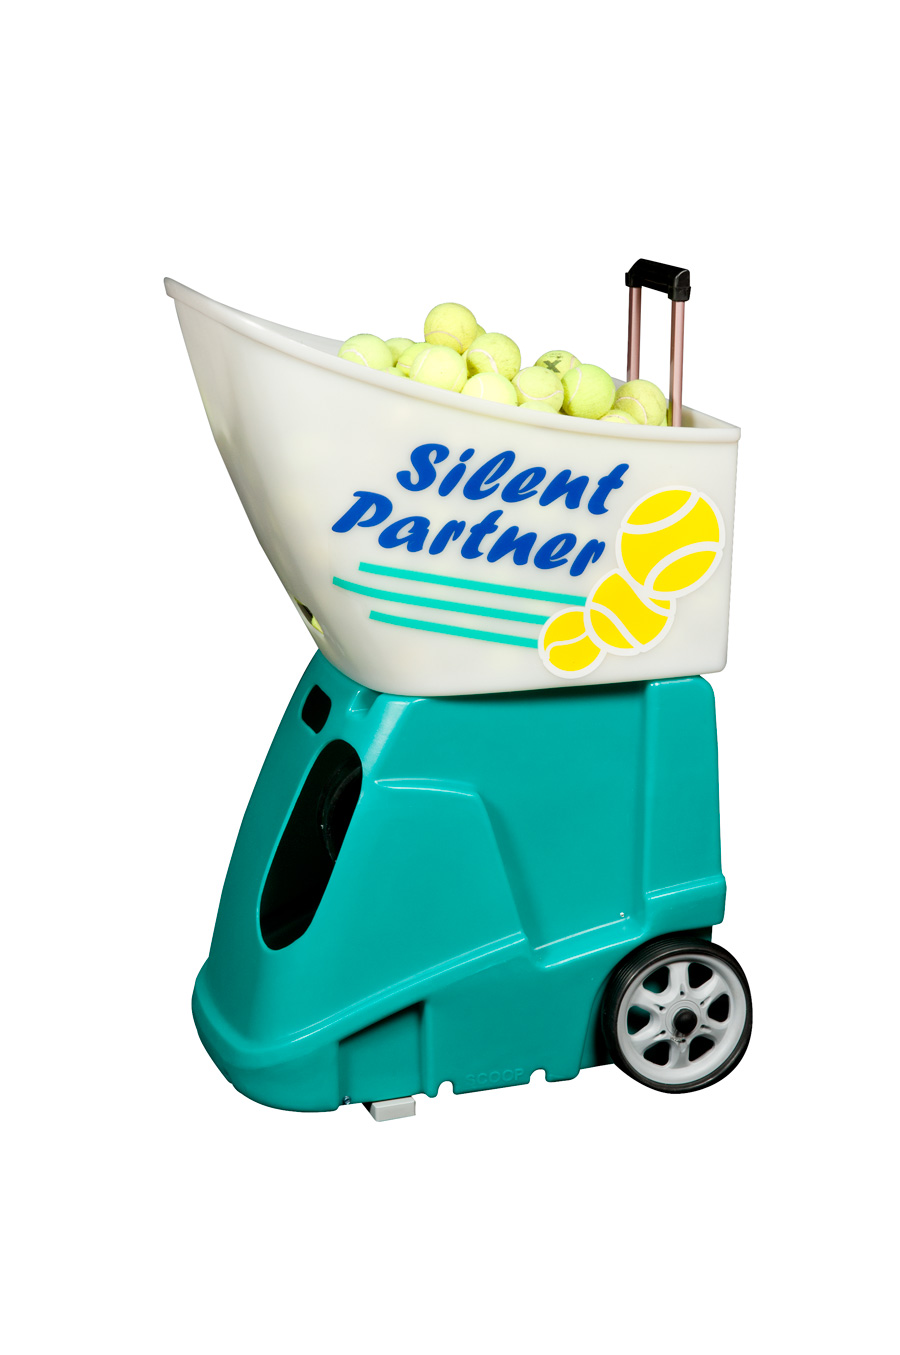 Silent Partner Tennis, a division of Deuce Industries Ltd., was founded in 1989 by Dr. John Bassili